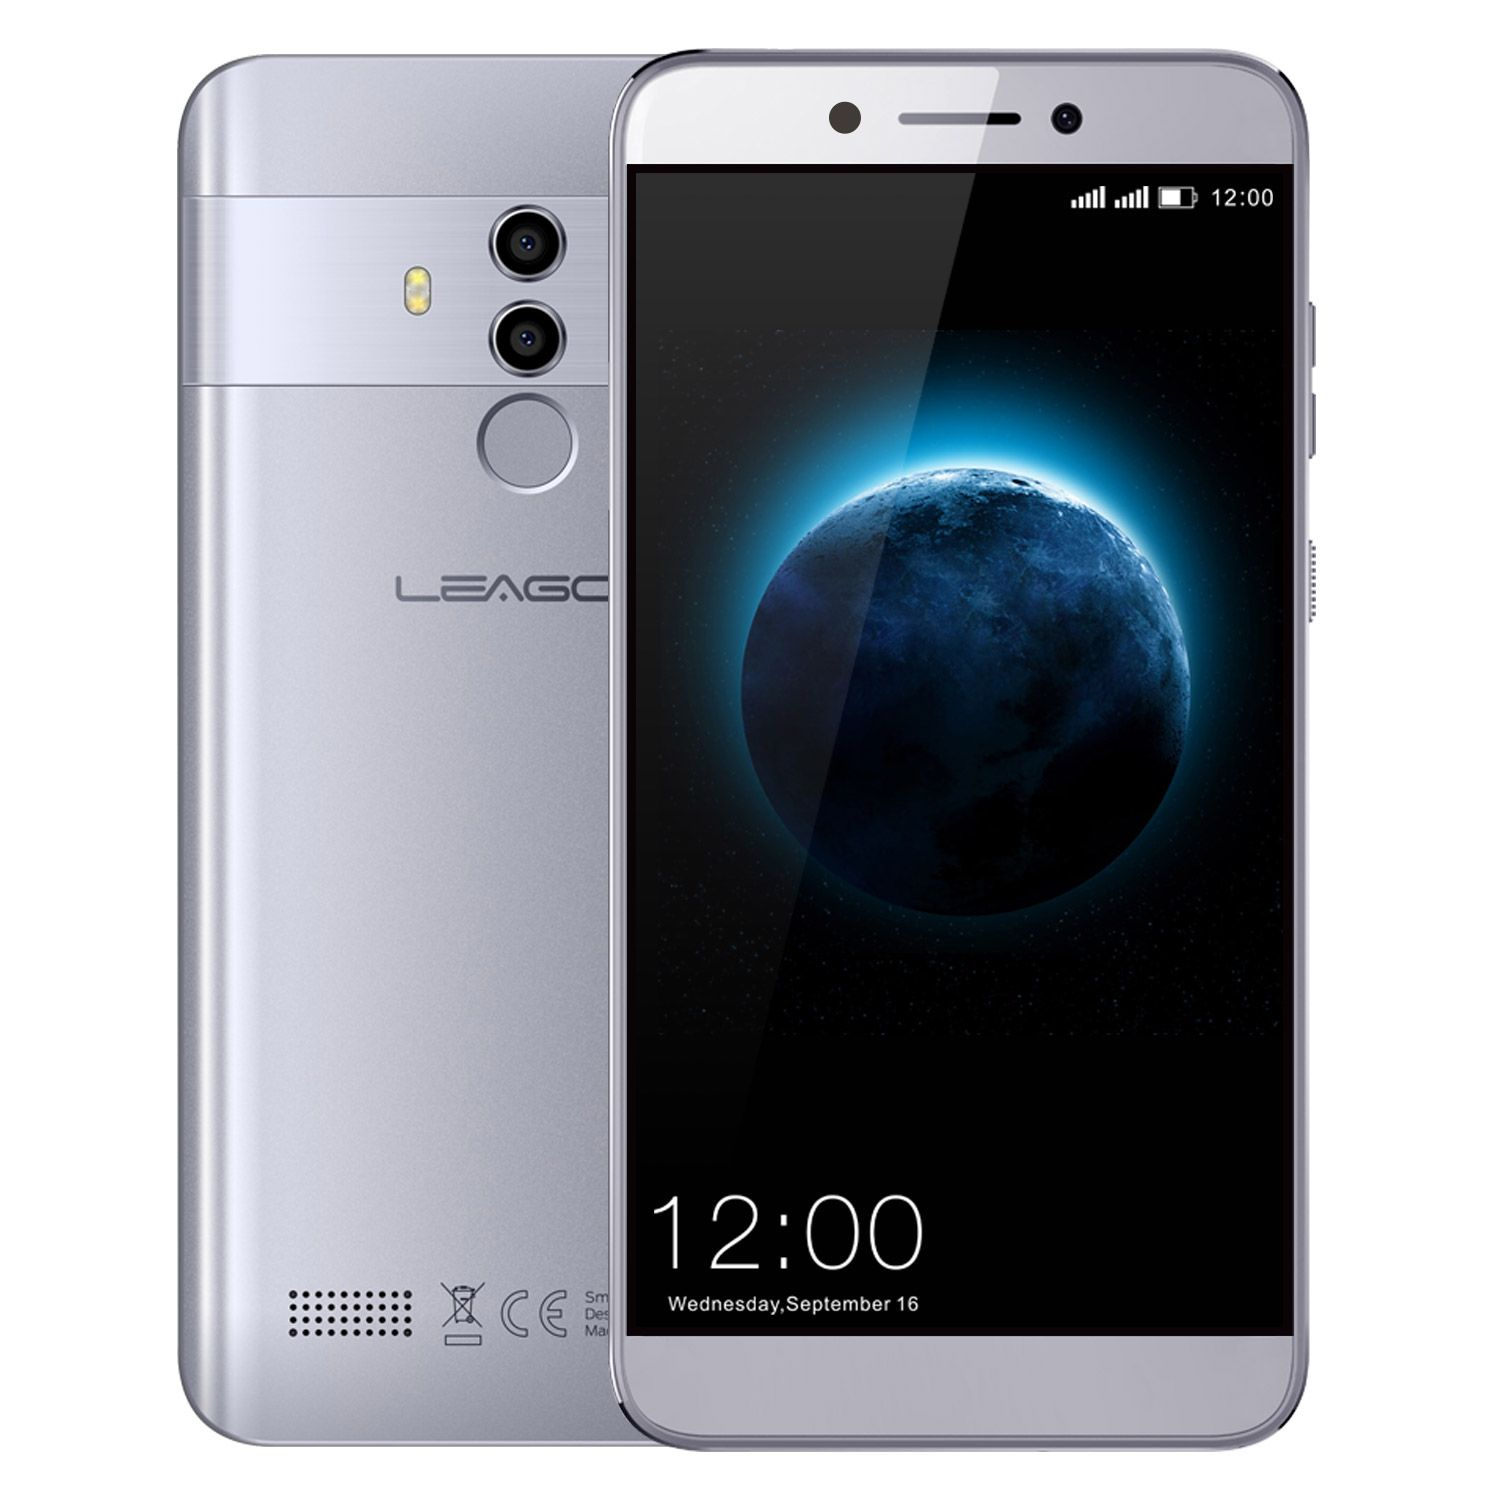 5b5c2a71a2015 - Leagoo T8S Specs Review, Price and Features.